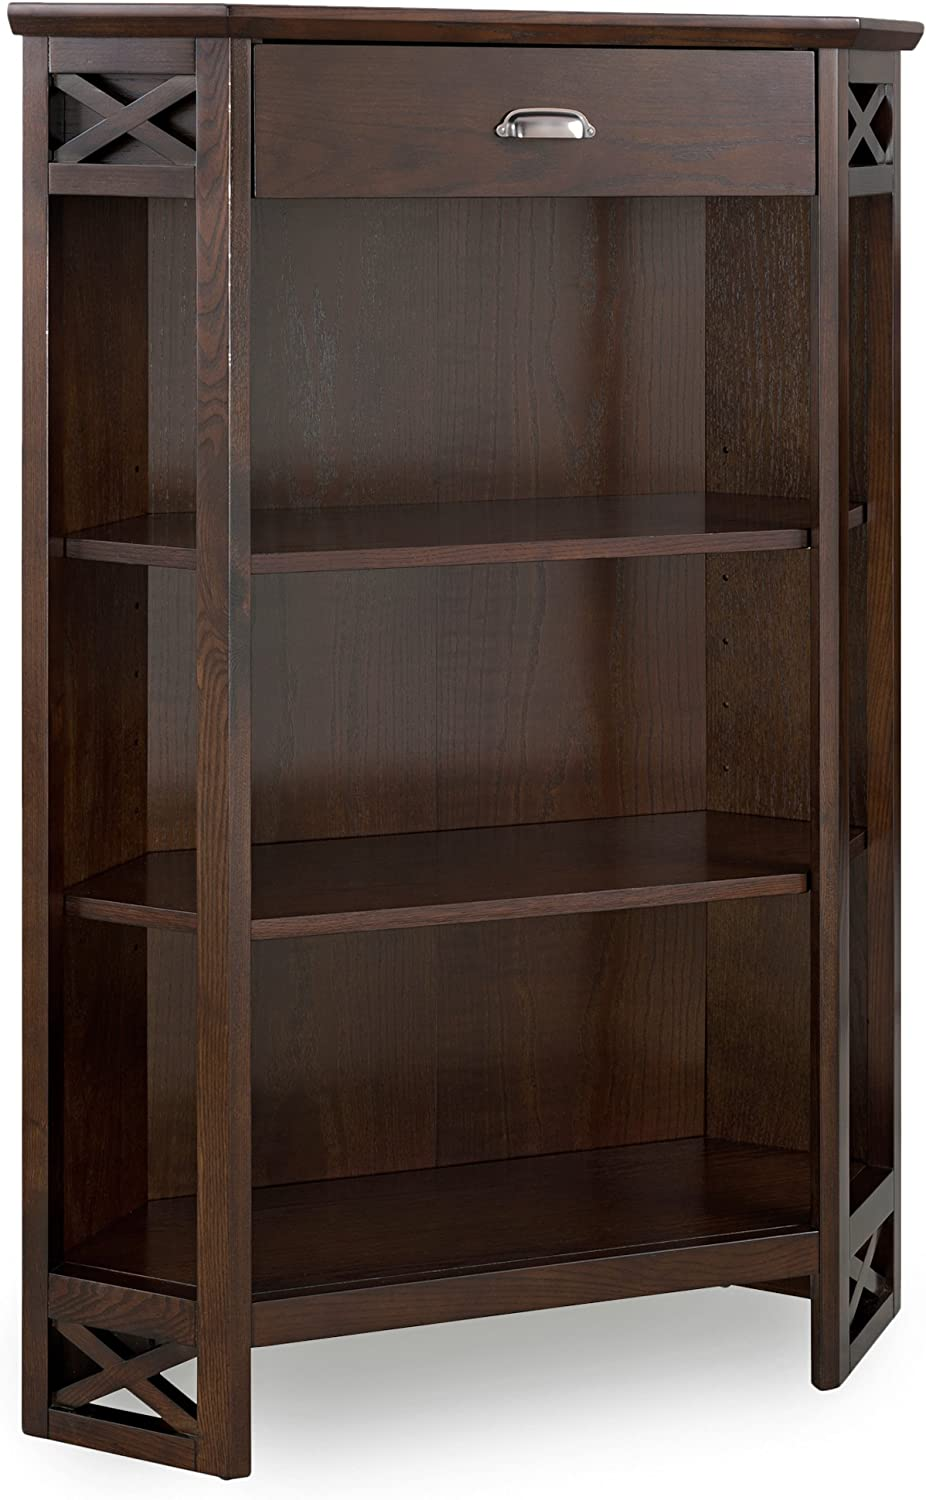 Soldering Leick Furniture Mantel Height Max 55% OFF 3-Shelf with Corner Bookcase Drawe